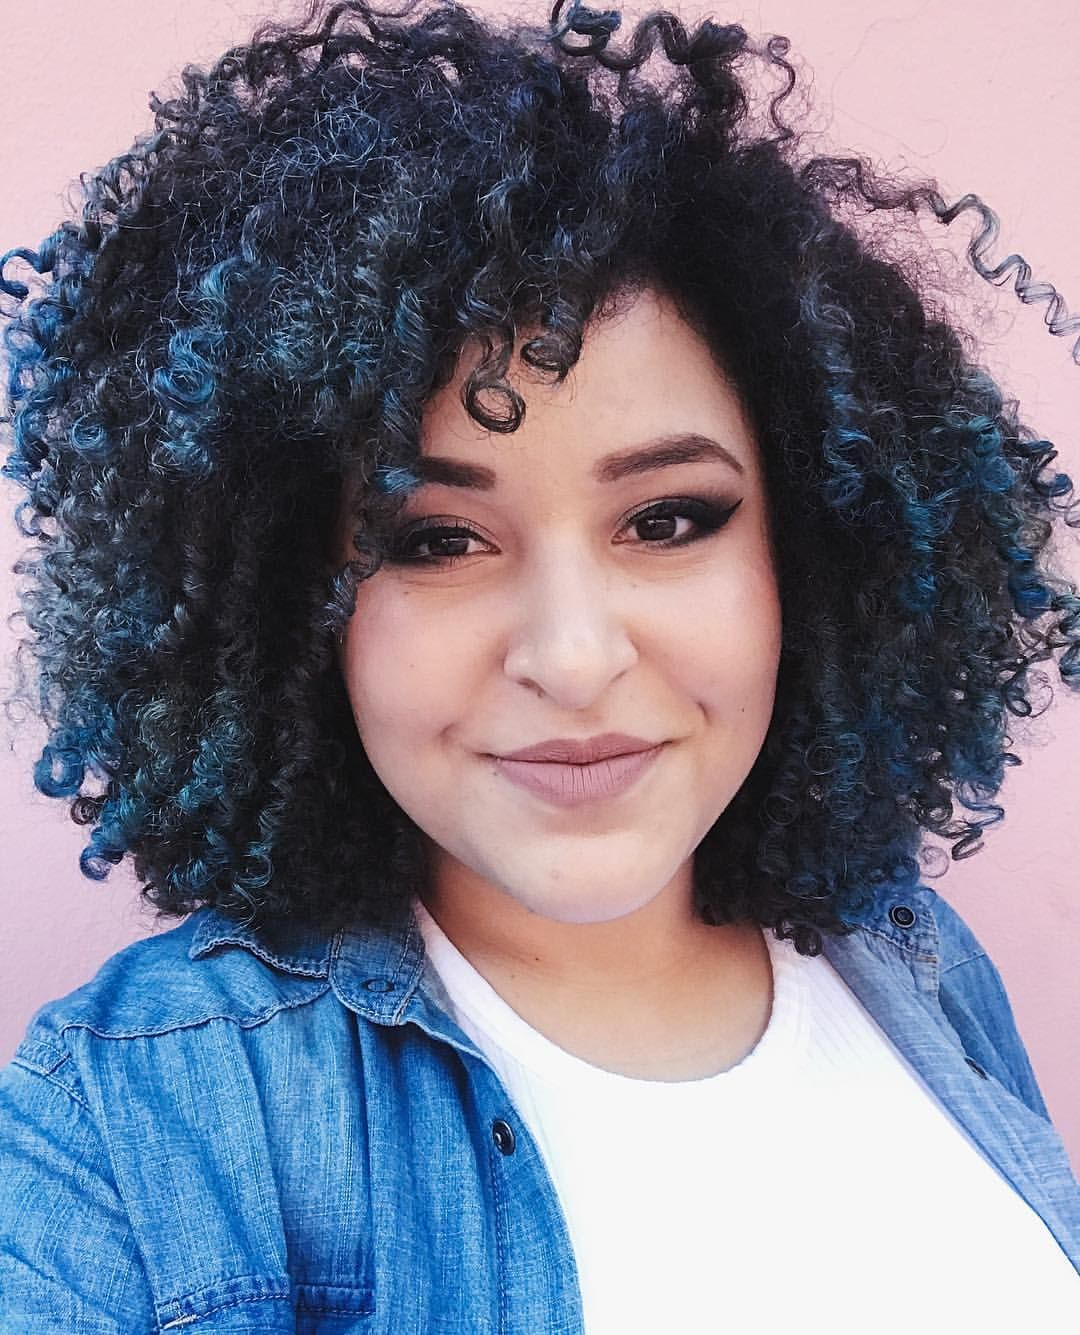 Blue Highlights Curly Hair 3b 3c Afro Natural Hair Pinterest